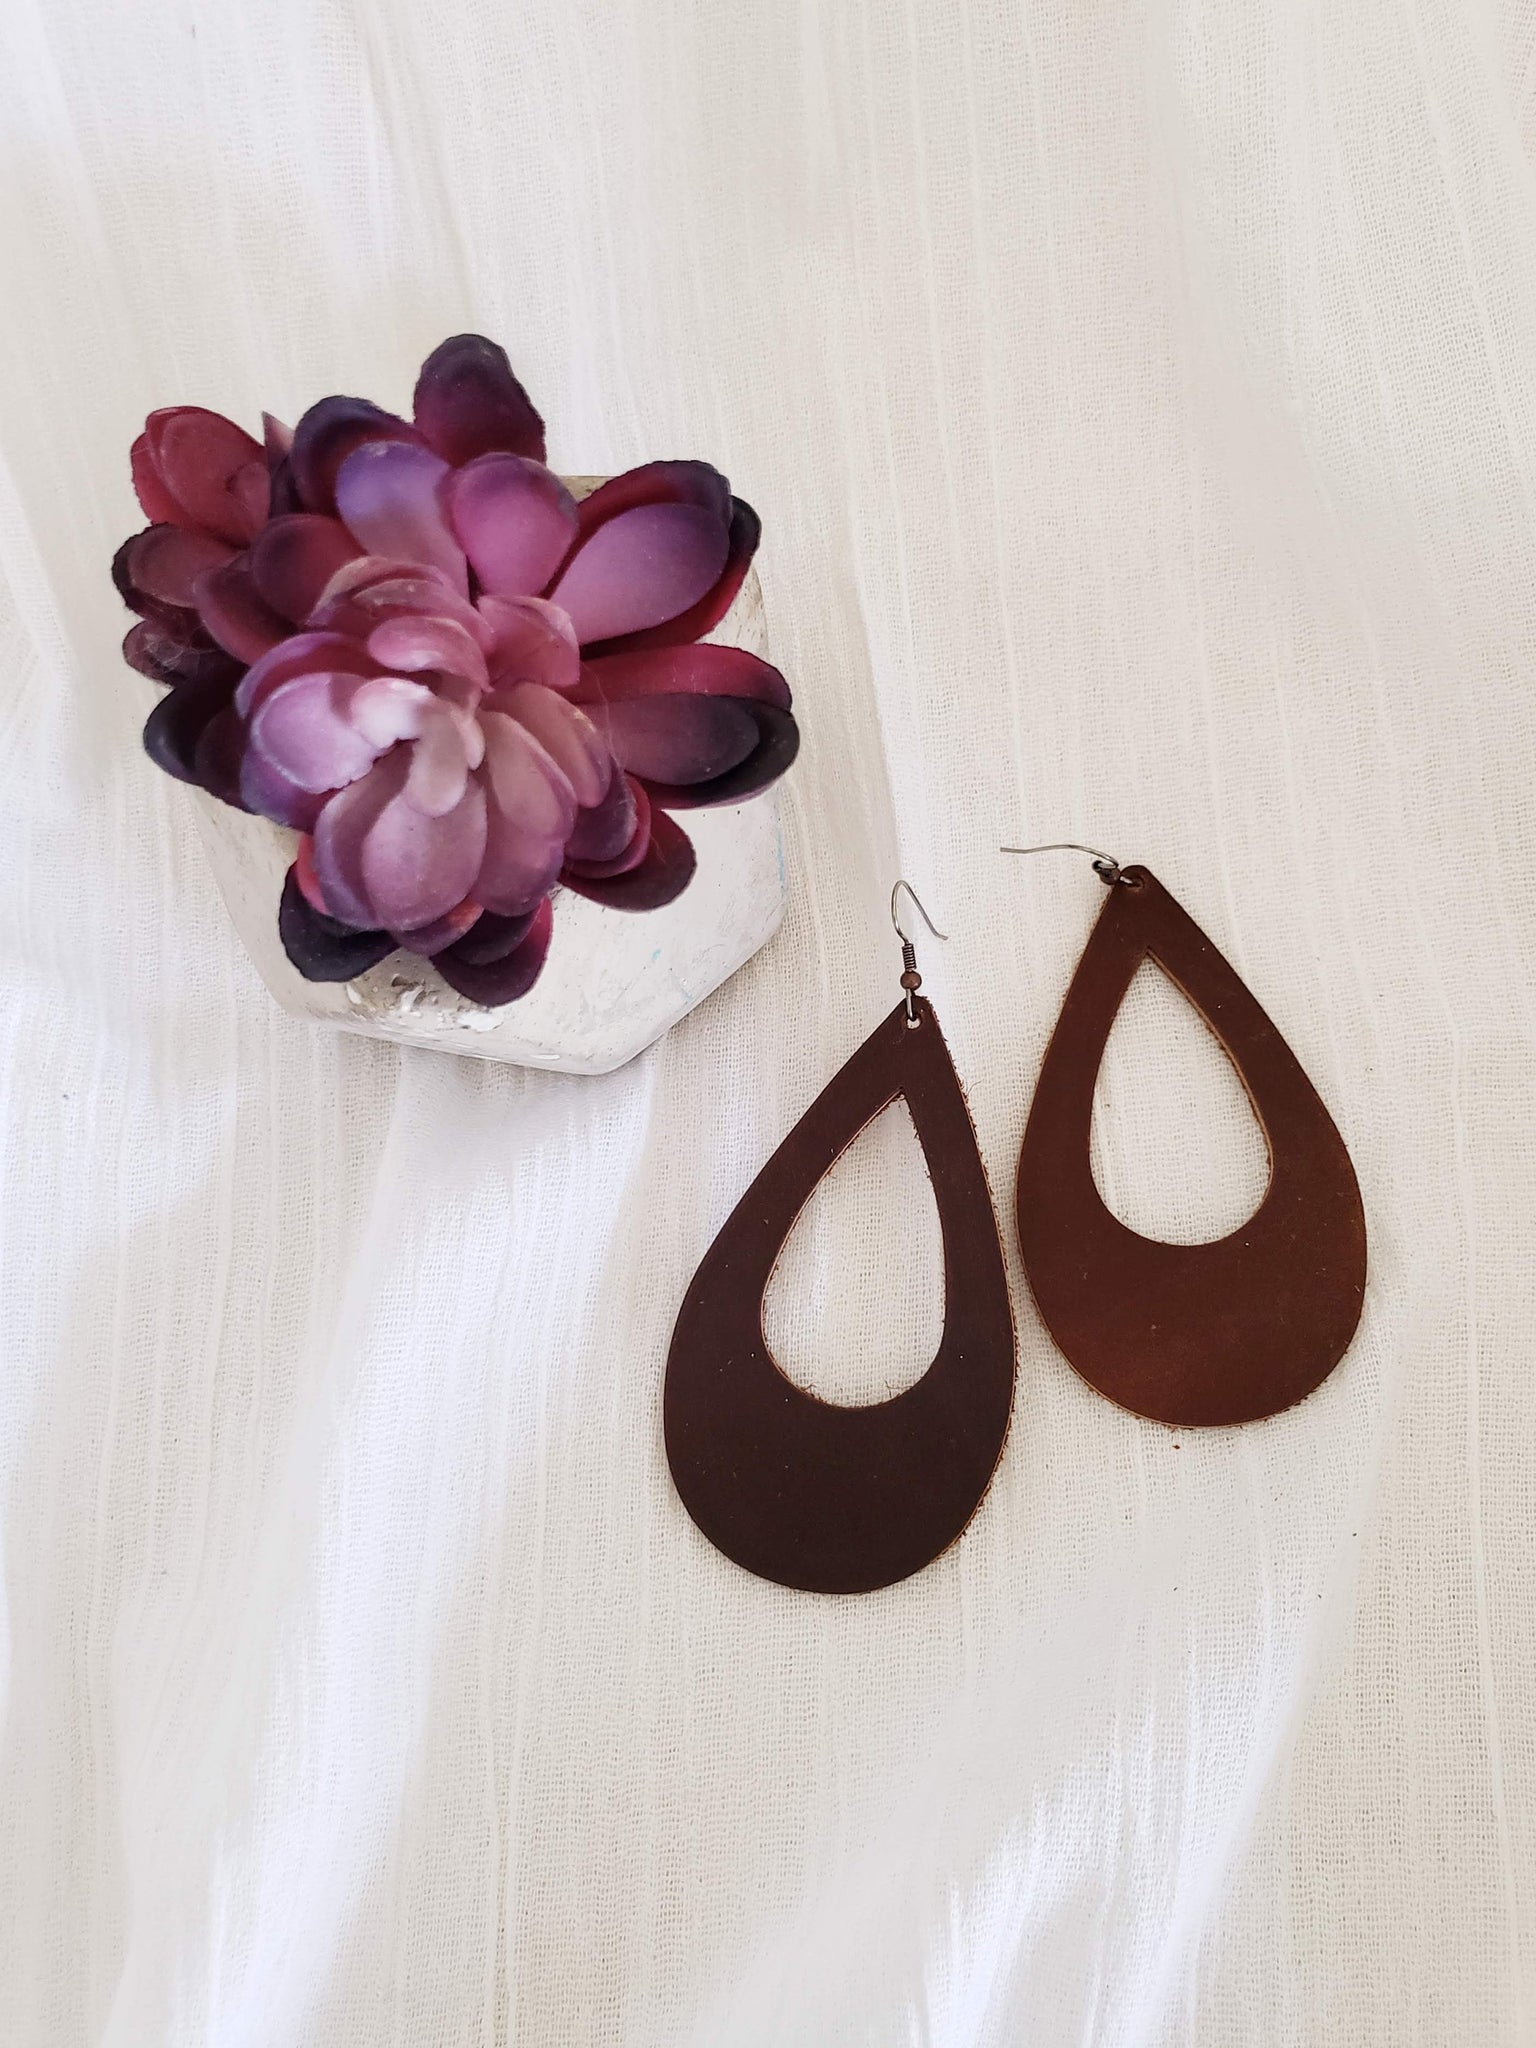 Chocolate Brown / Leather Earrings / Cutout / Teardrop Style / Large / FREE SHIPPING